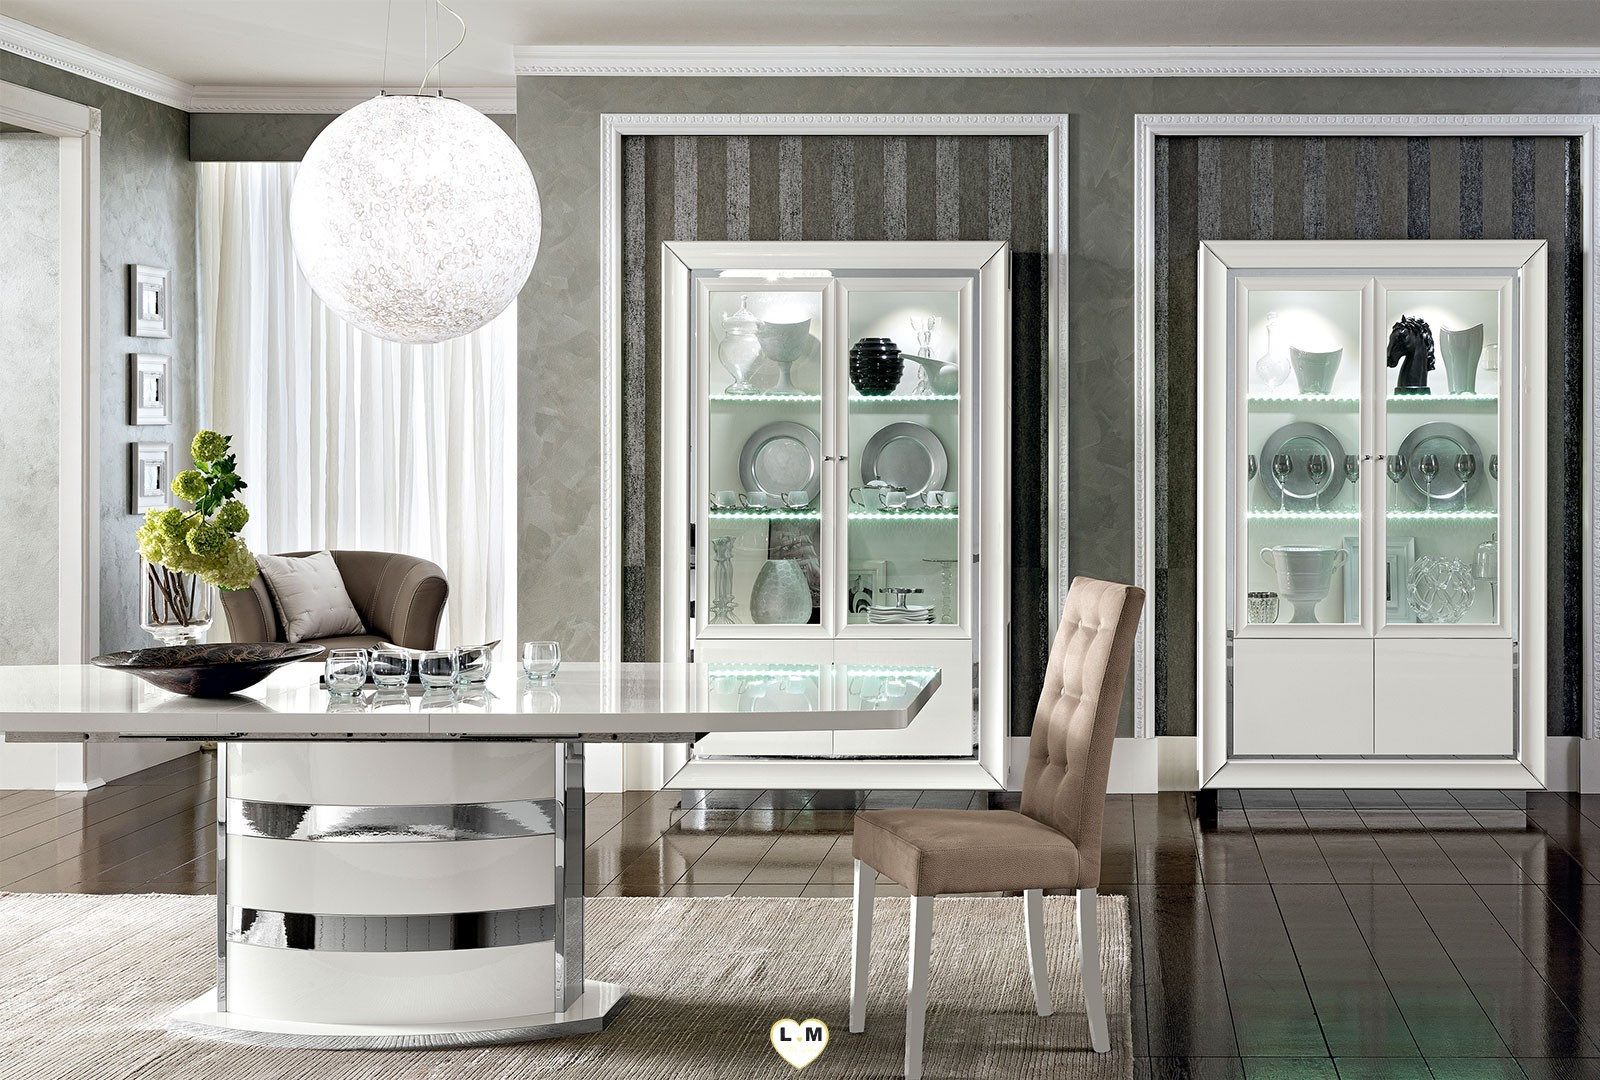 maximus laque blanc brillant sejour salle a manger contemporain la vitrine 2 portes. Black Bedroom Furniture Sets. Home Design Ideas